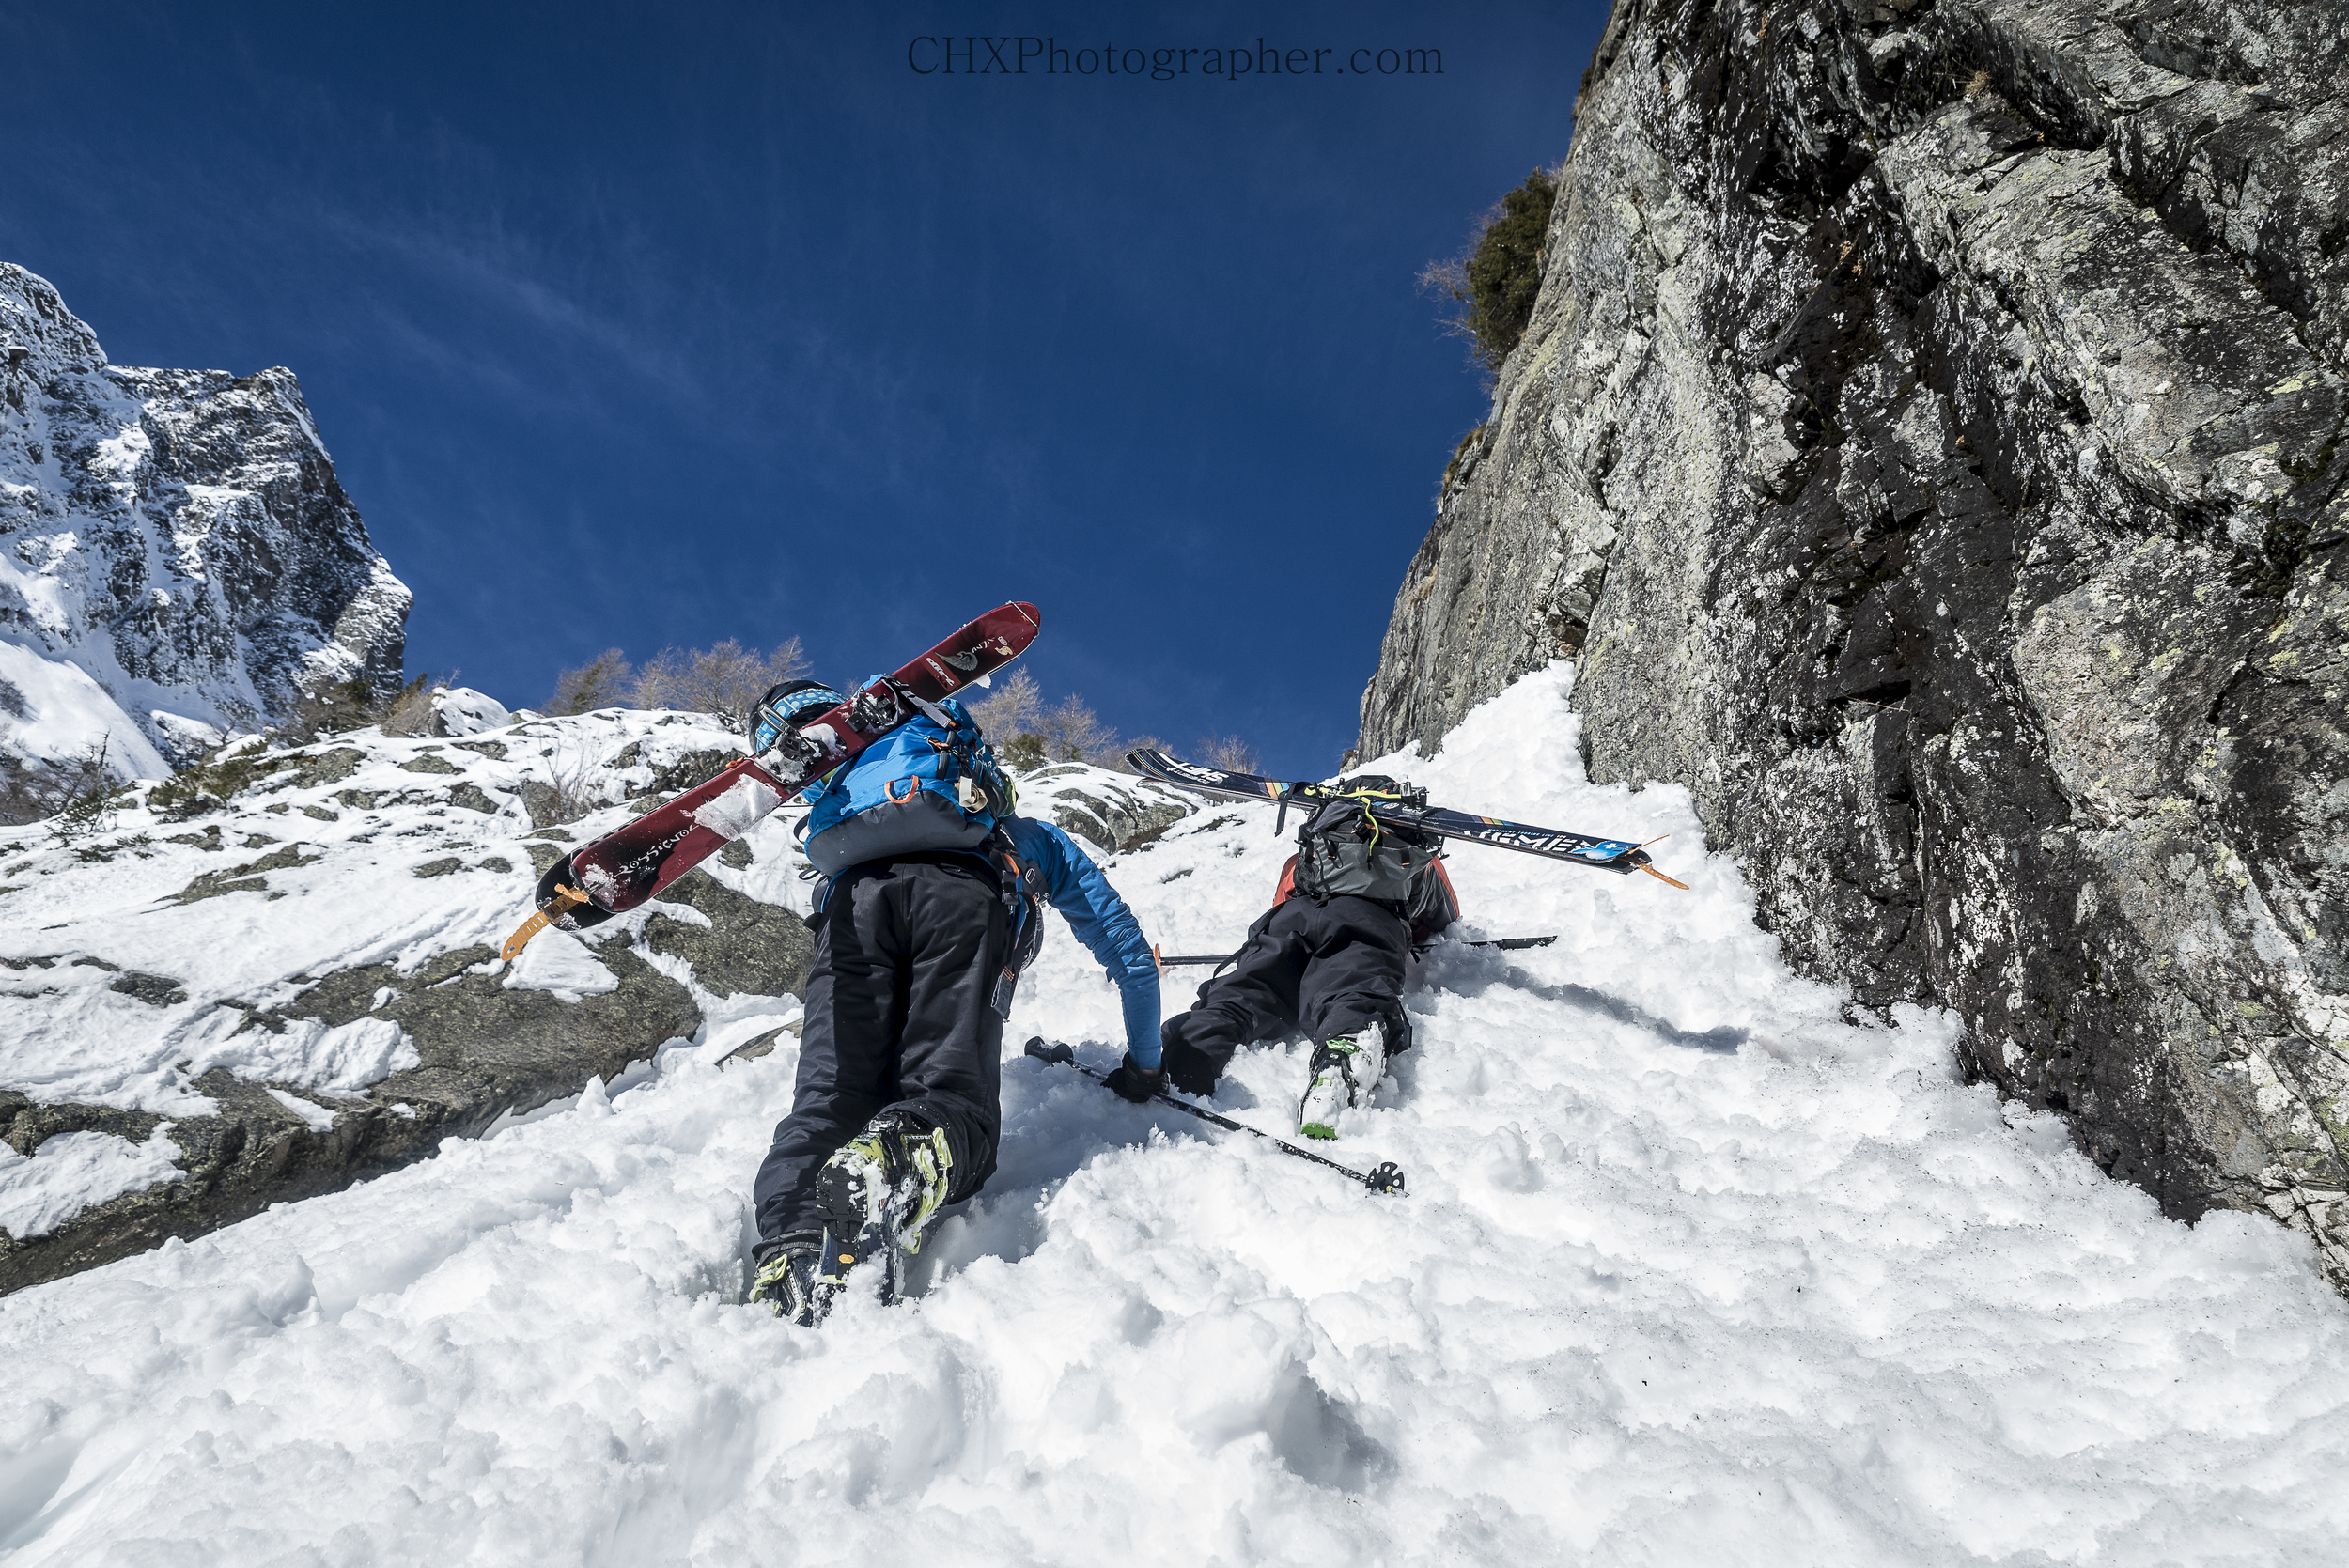 Exploring the Aiguille Rouge parc national in the Chamonix valley